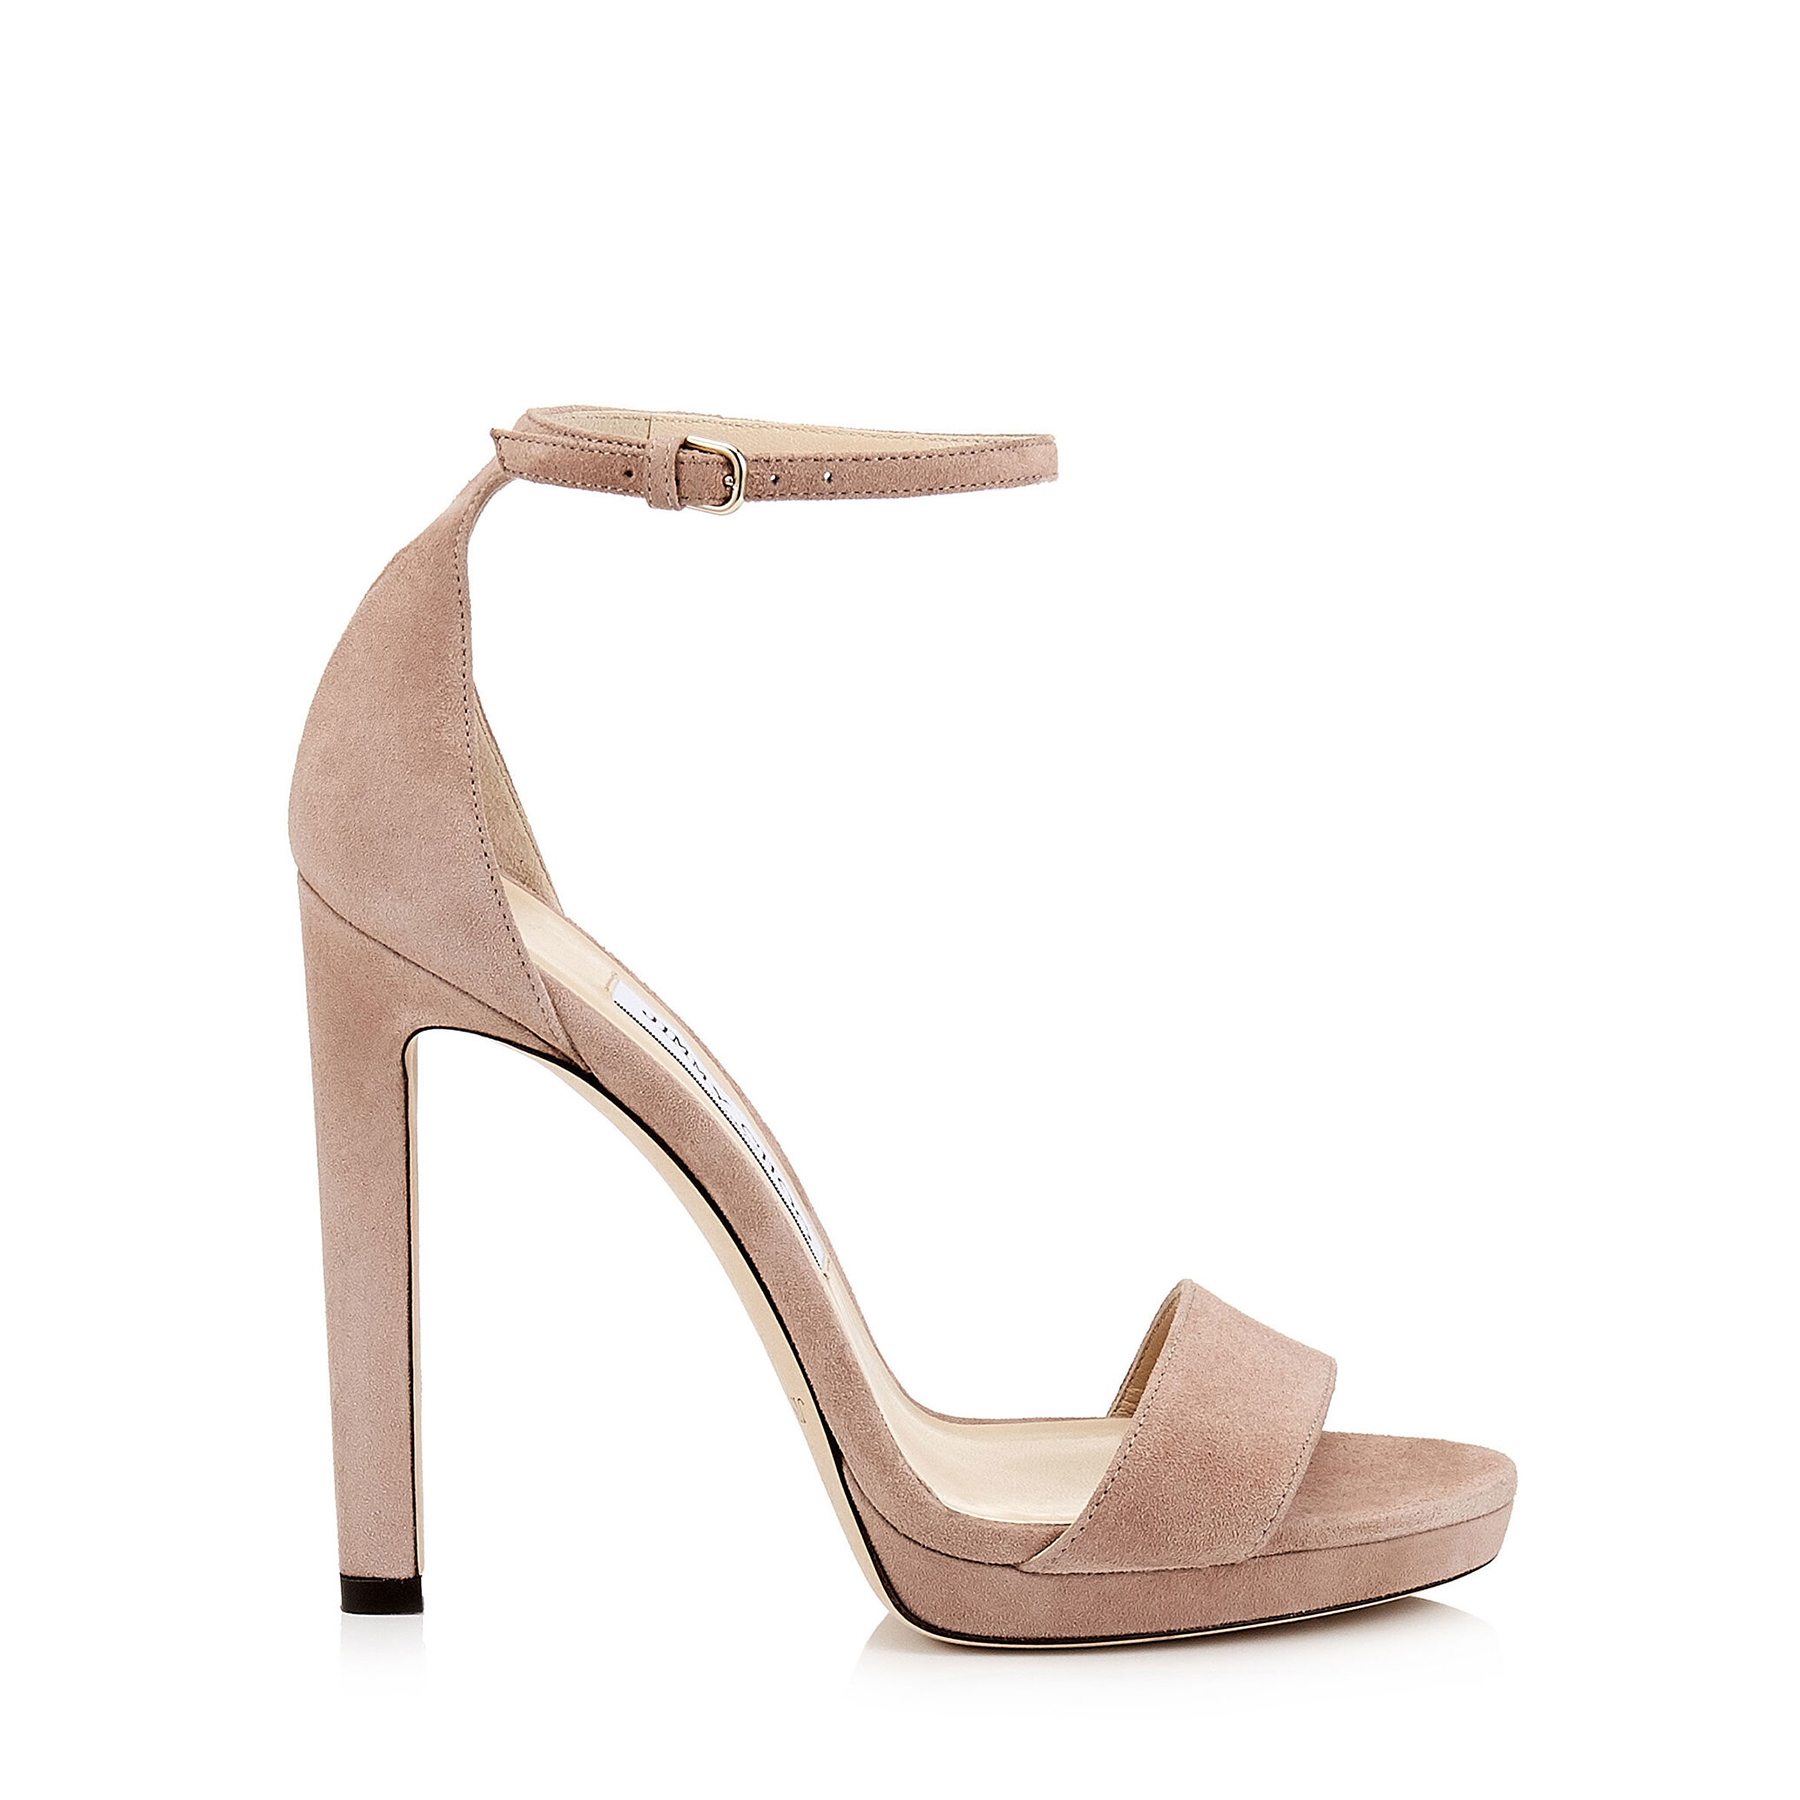 MISTY 120 Ballet Pink Platform Sandals by Jimmy Choo